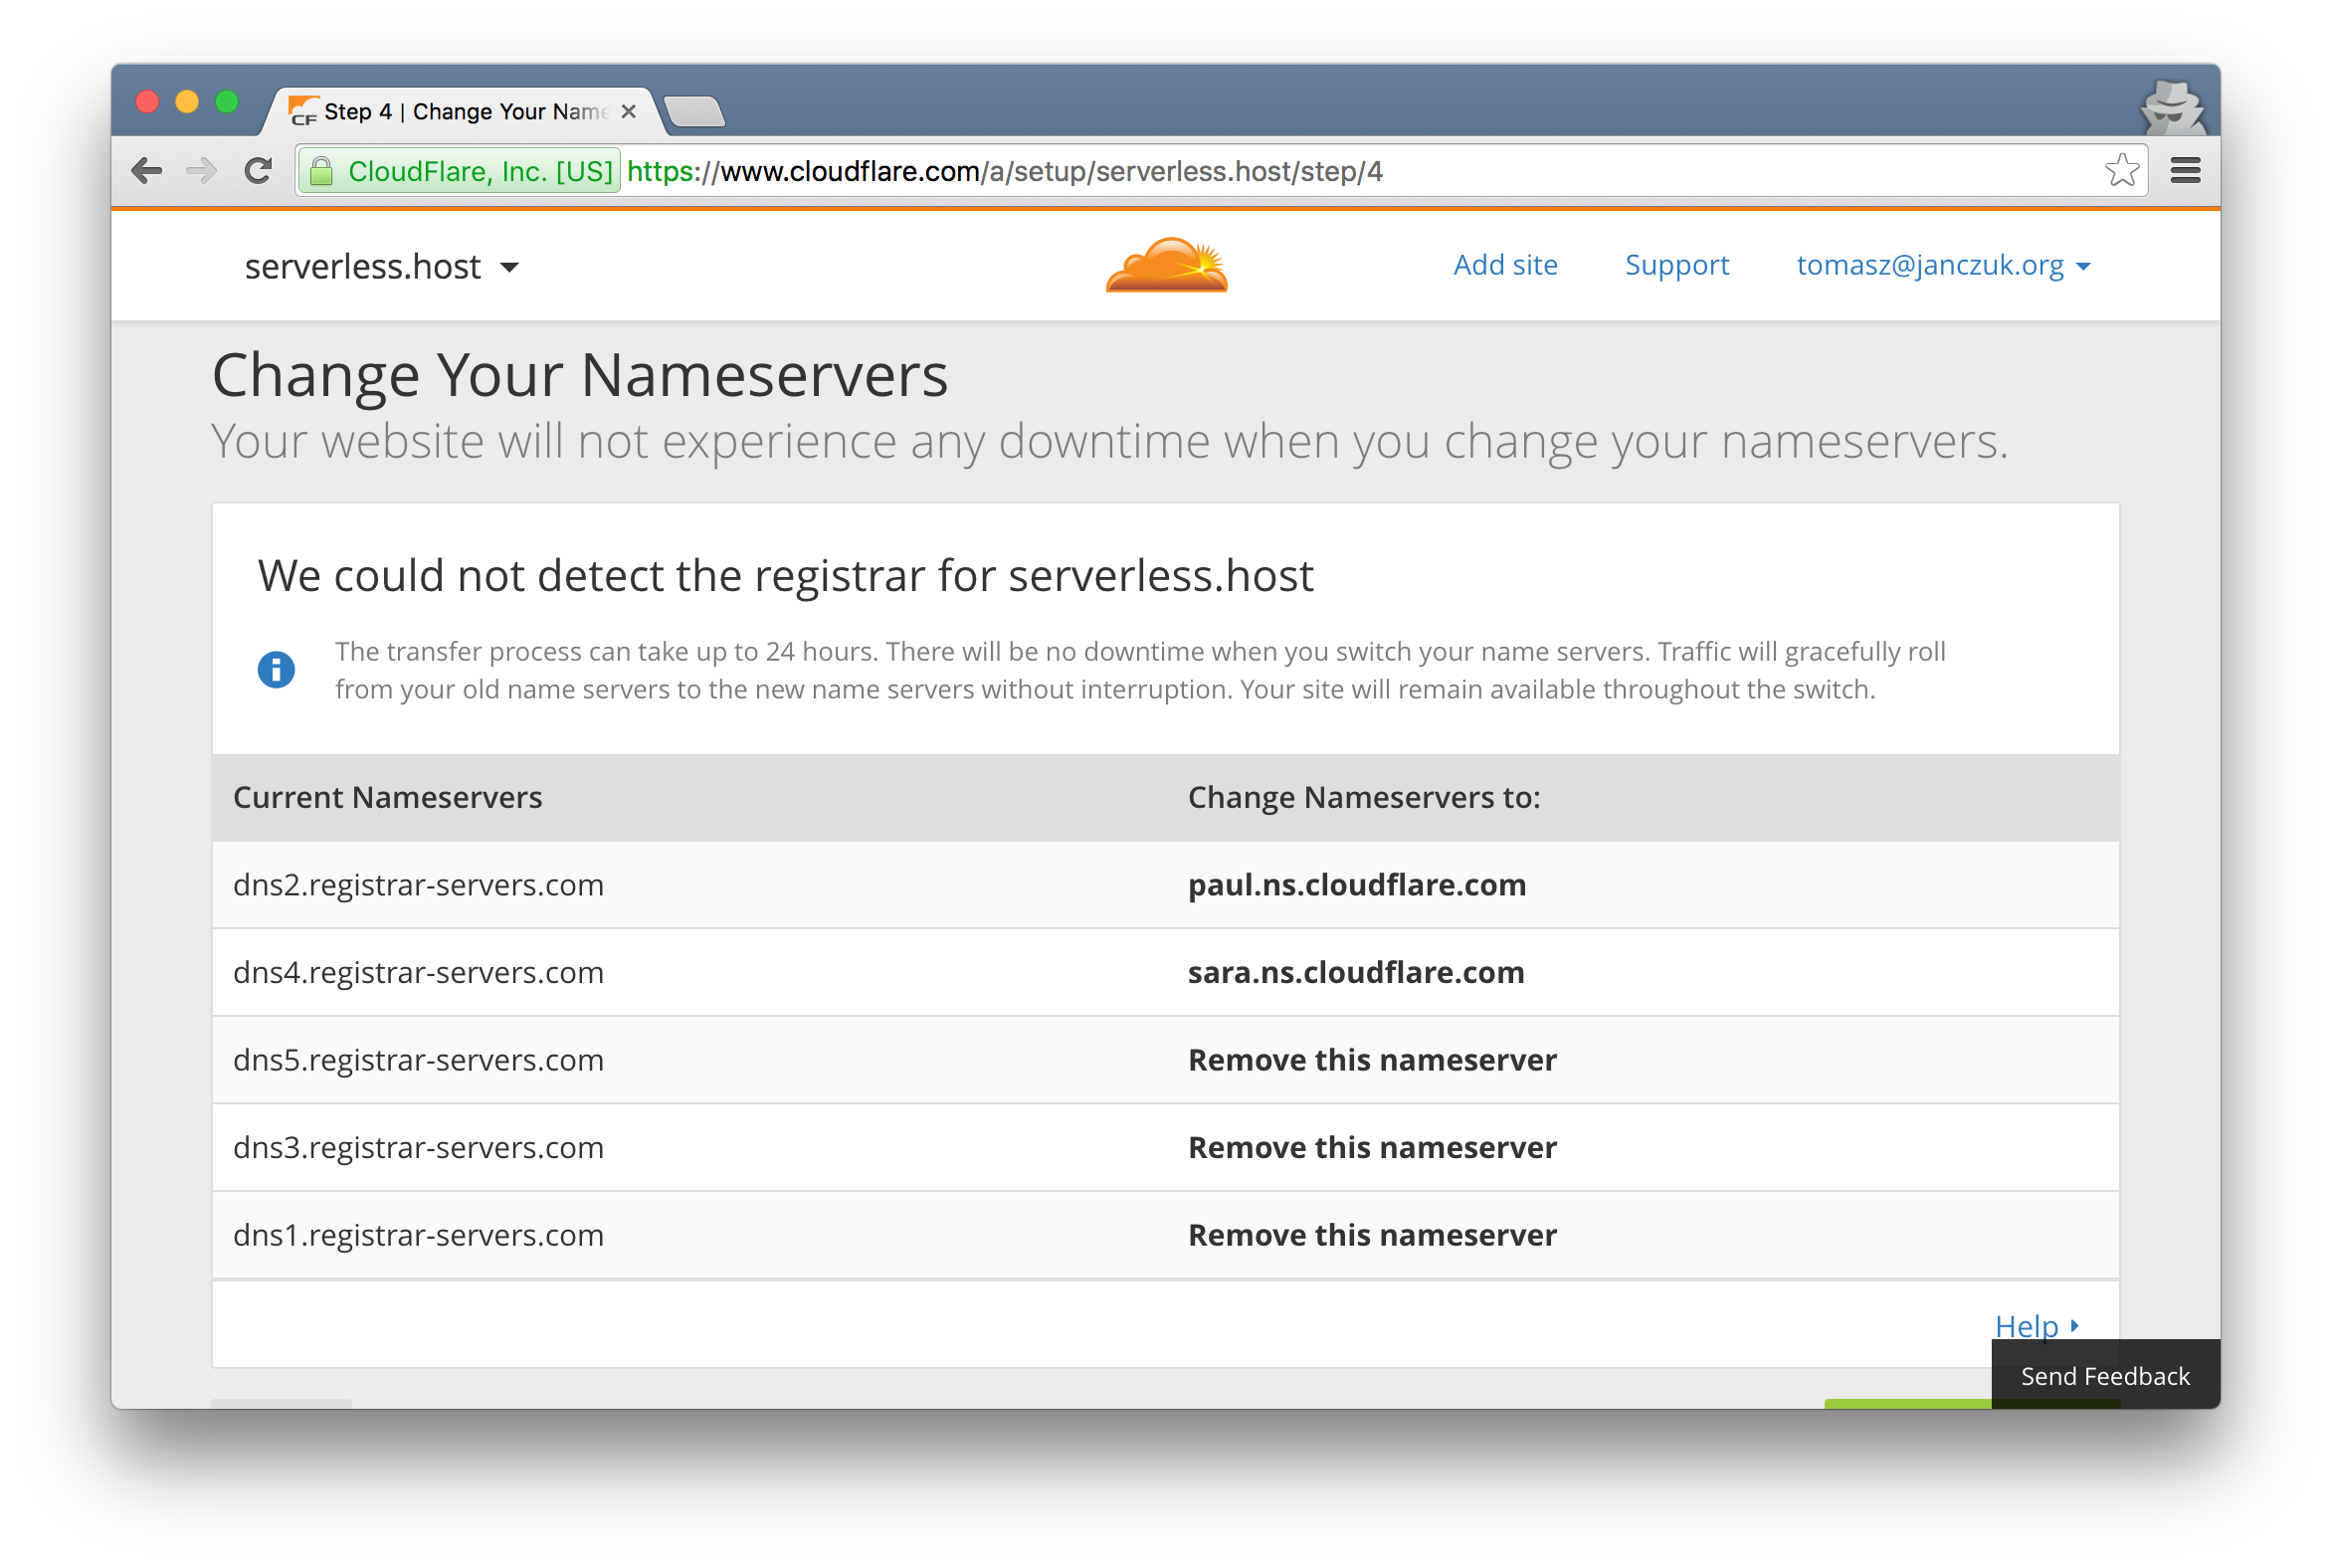 New CloudFlare name servers to configure with your domain name registrar